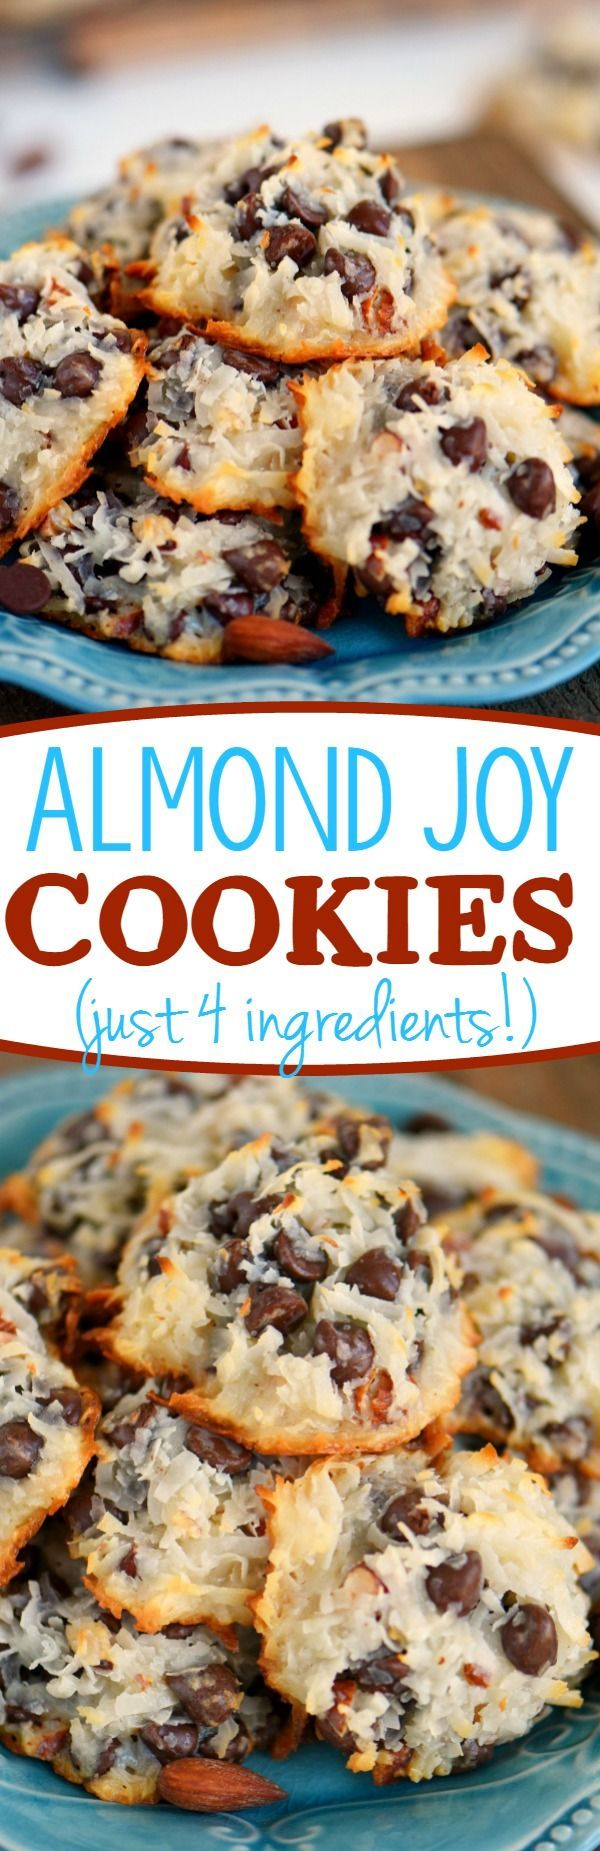 These easy Almond Joy Cookies take just four ingredients and don't even require a mixer! No beating, no chilling, just mix 'em up and throw 'em in the oven EASY! You're going to love these ooey gooey fabulous cookies! // Mom On Timeout